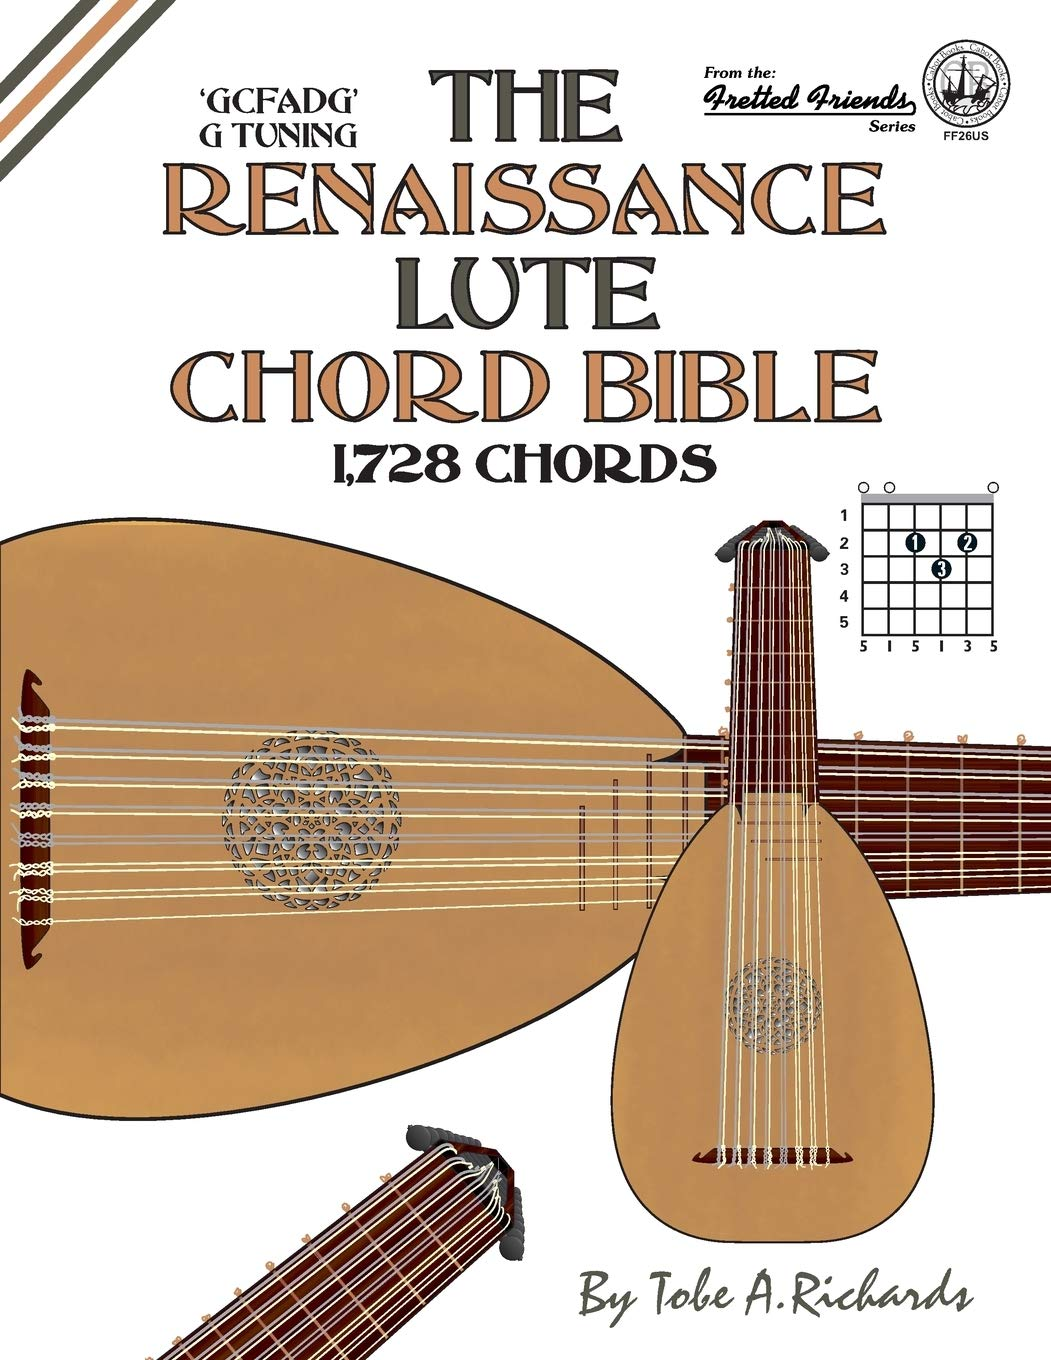 The Renaissance Lute Chord Bible: G Tuning 1,728 Chords Fretted ...